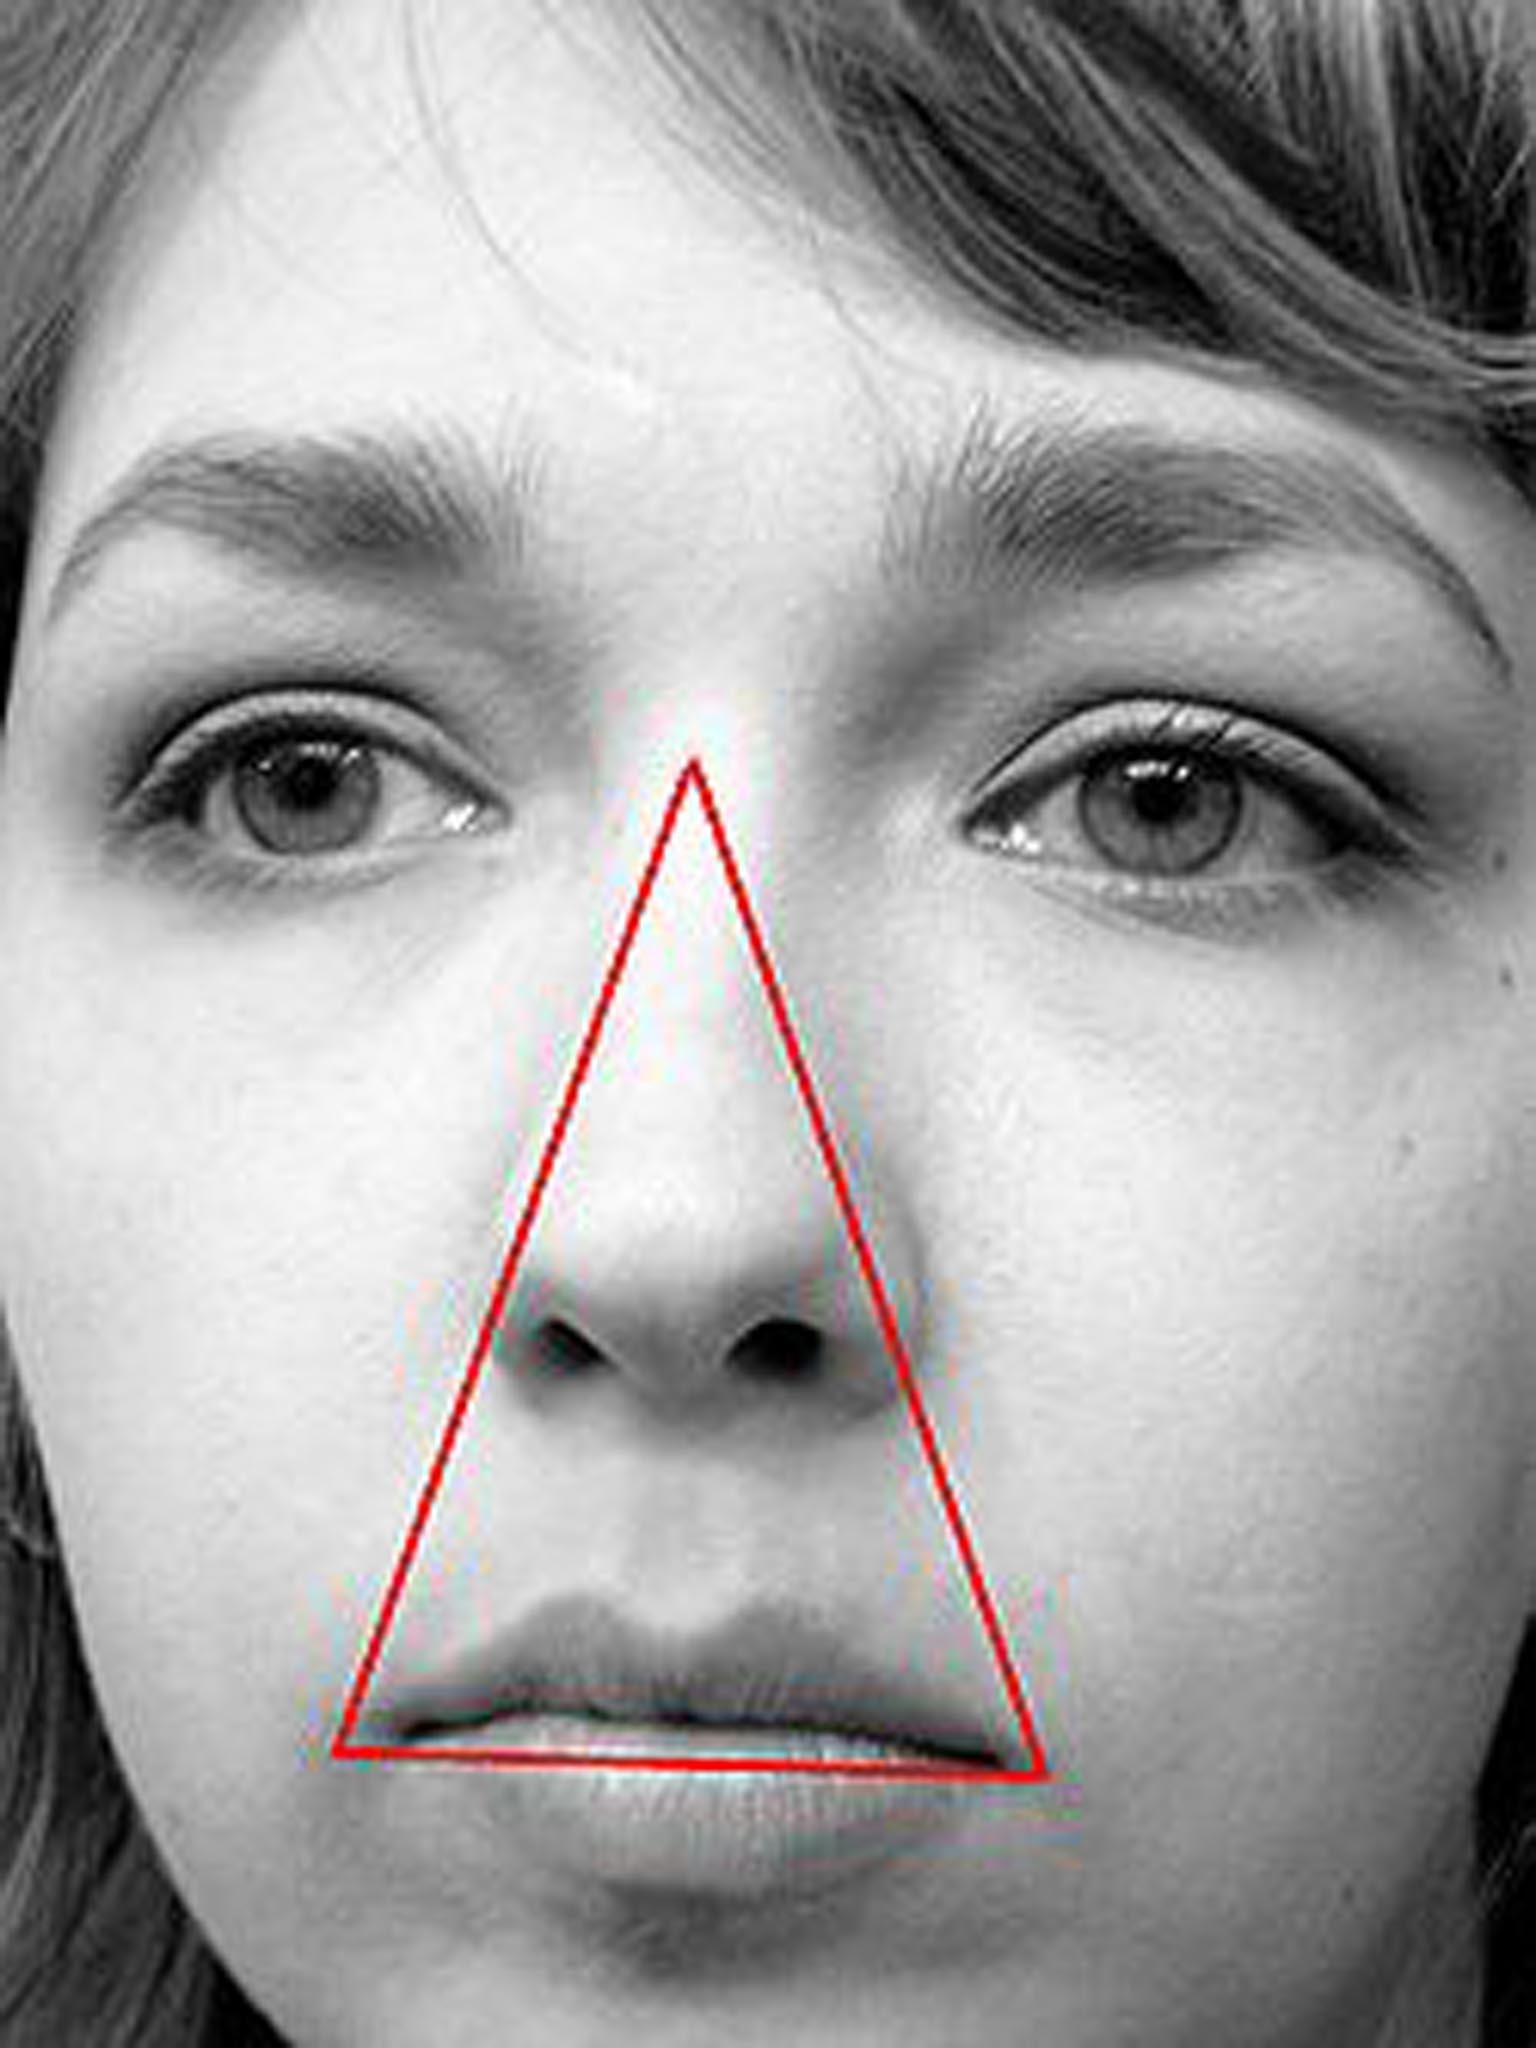 The danger triangle: How squeezing spots can kill you (if